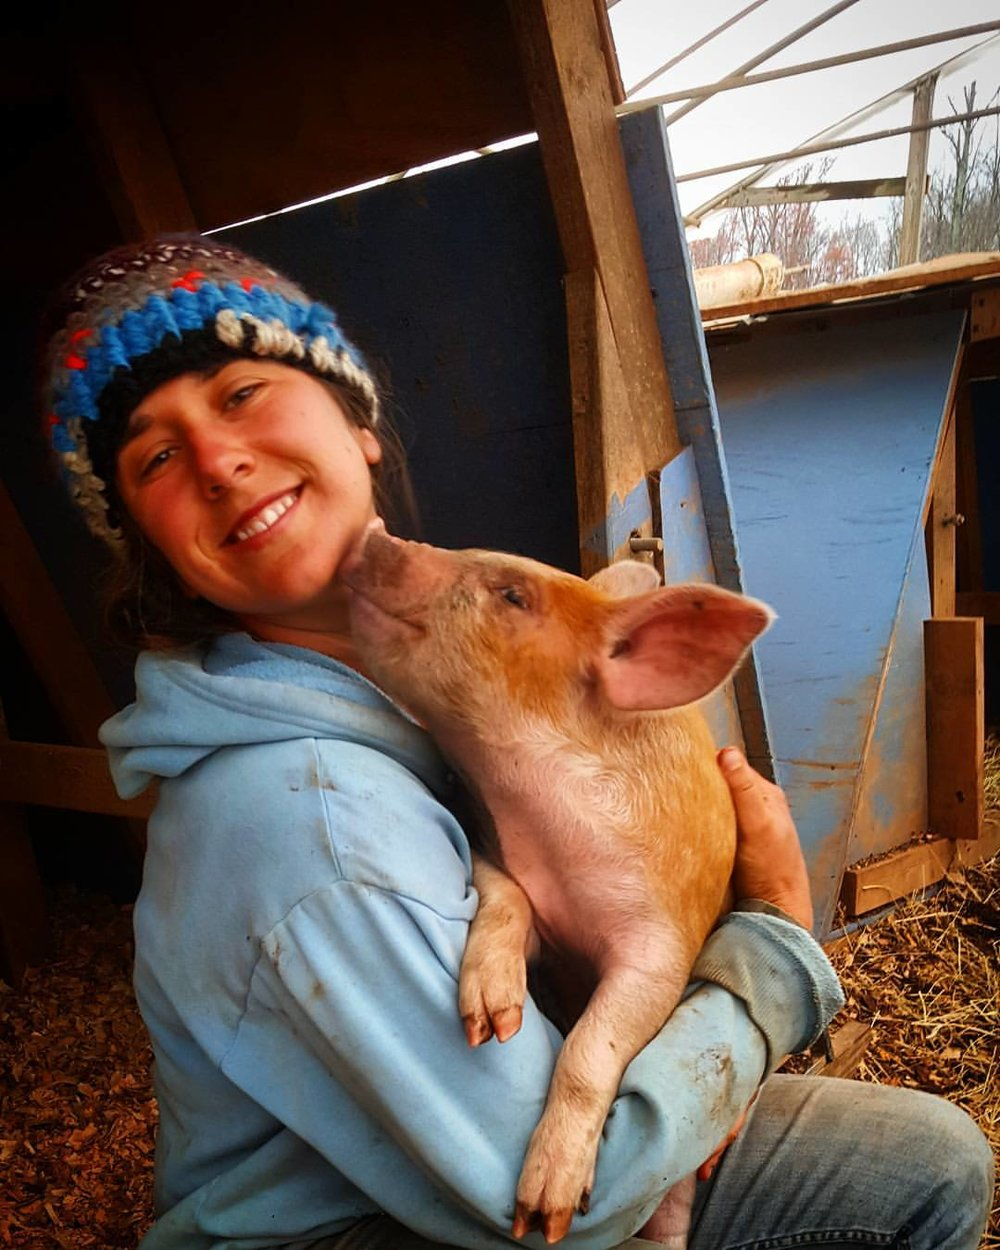 Maria is one-half of Bluebird Farms, grand prize recipients from our second event.